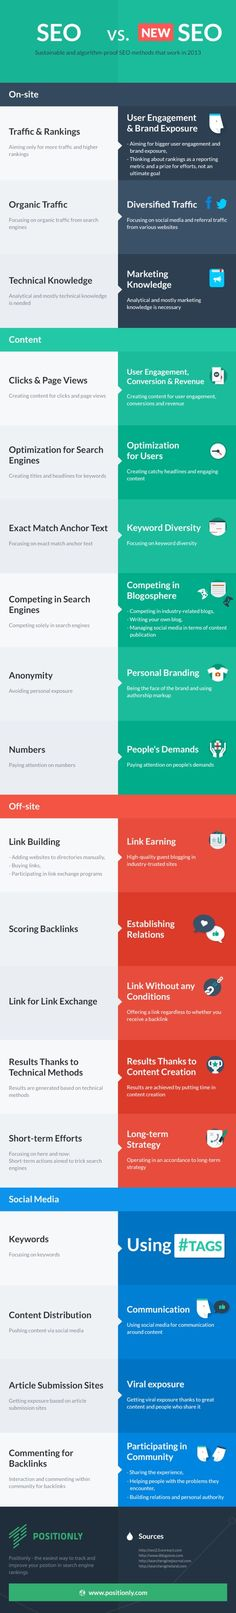 SEO vs NEW SEO #infographic